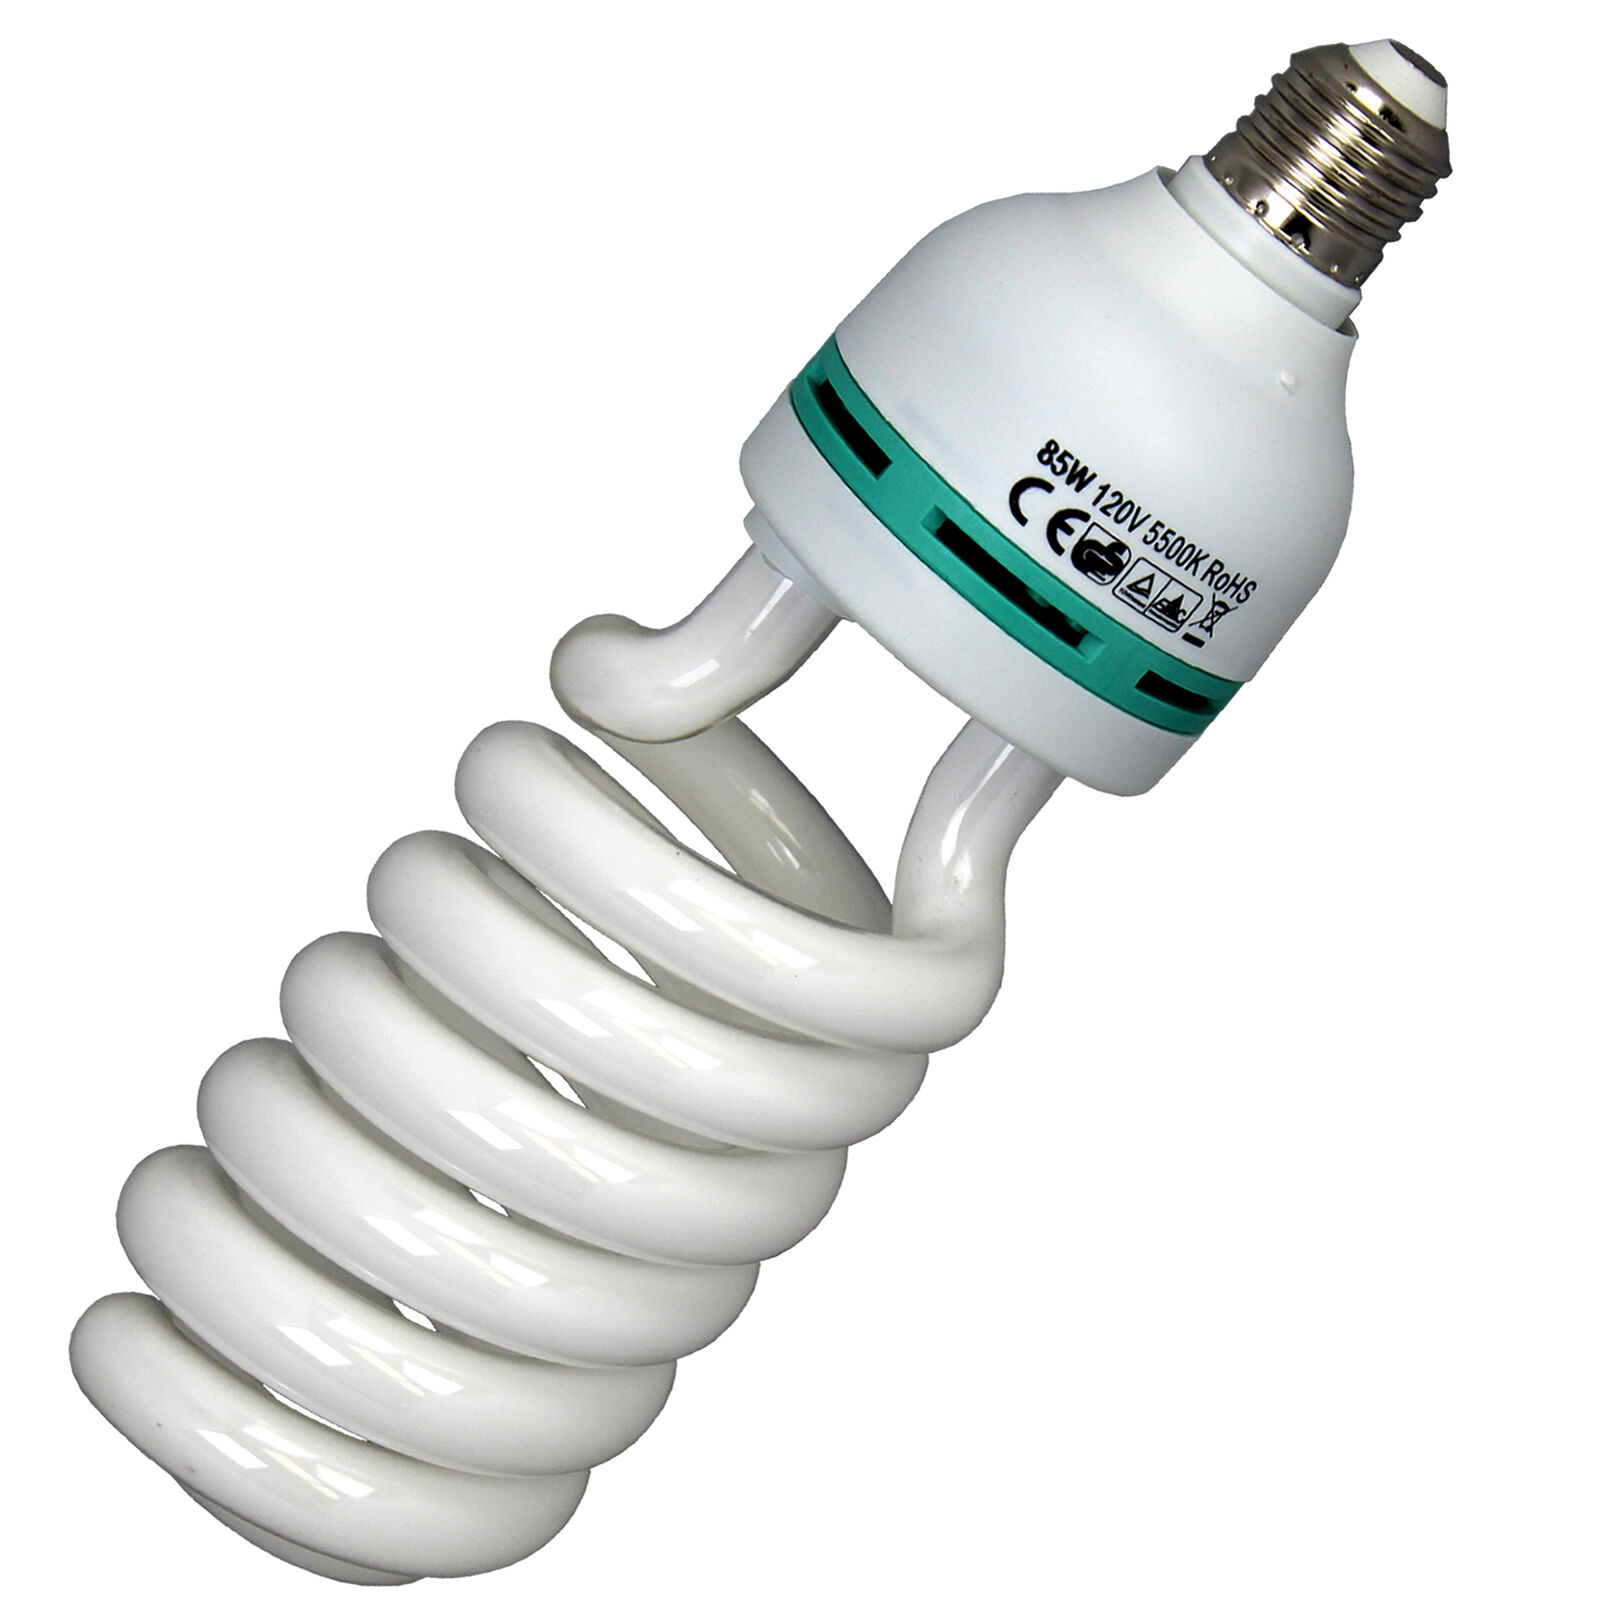 Single 85w Cfl Compact Fluorescent Photography Light Bulb 5500k Cool Lampu Studio 45w Daylight 1 Of 3free Shipping